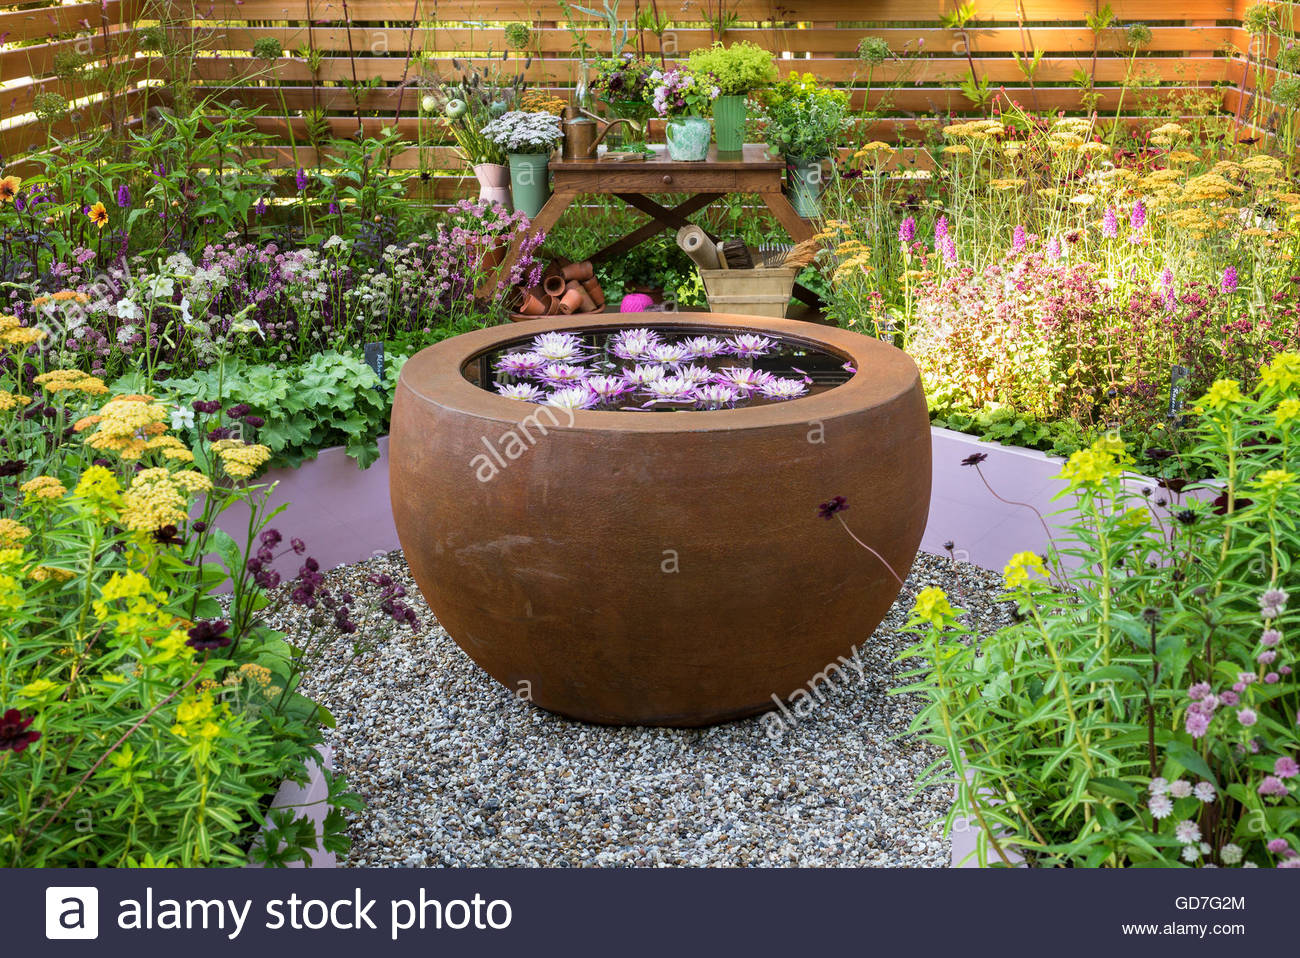 Small summer garden with flowering perennials and round water bowl small summer garden with flowering perennials and round water bowl with water lilies surrounded by wooden panel fencing mightylinksfo